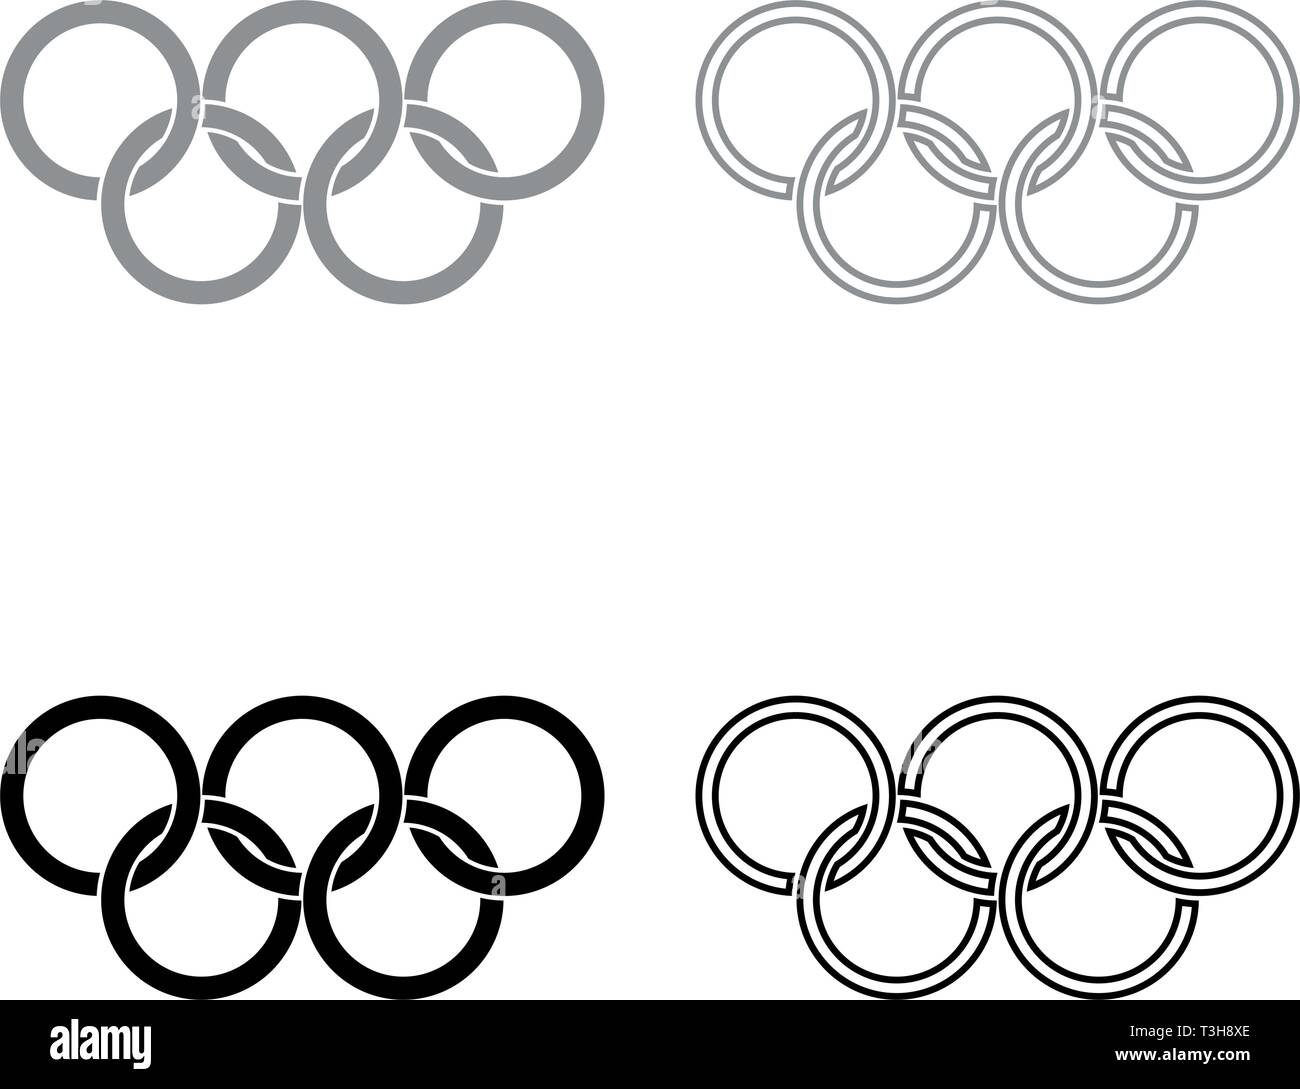 Olympic rings Five Olympic rings icon set black grey color vector illustration flat style simple image - Stock Vector